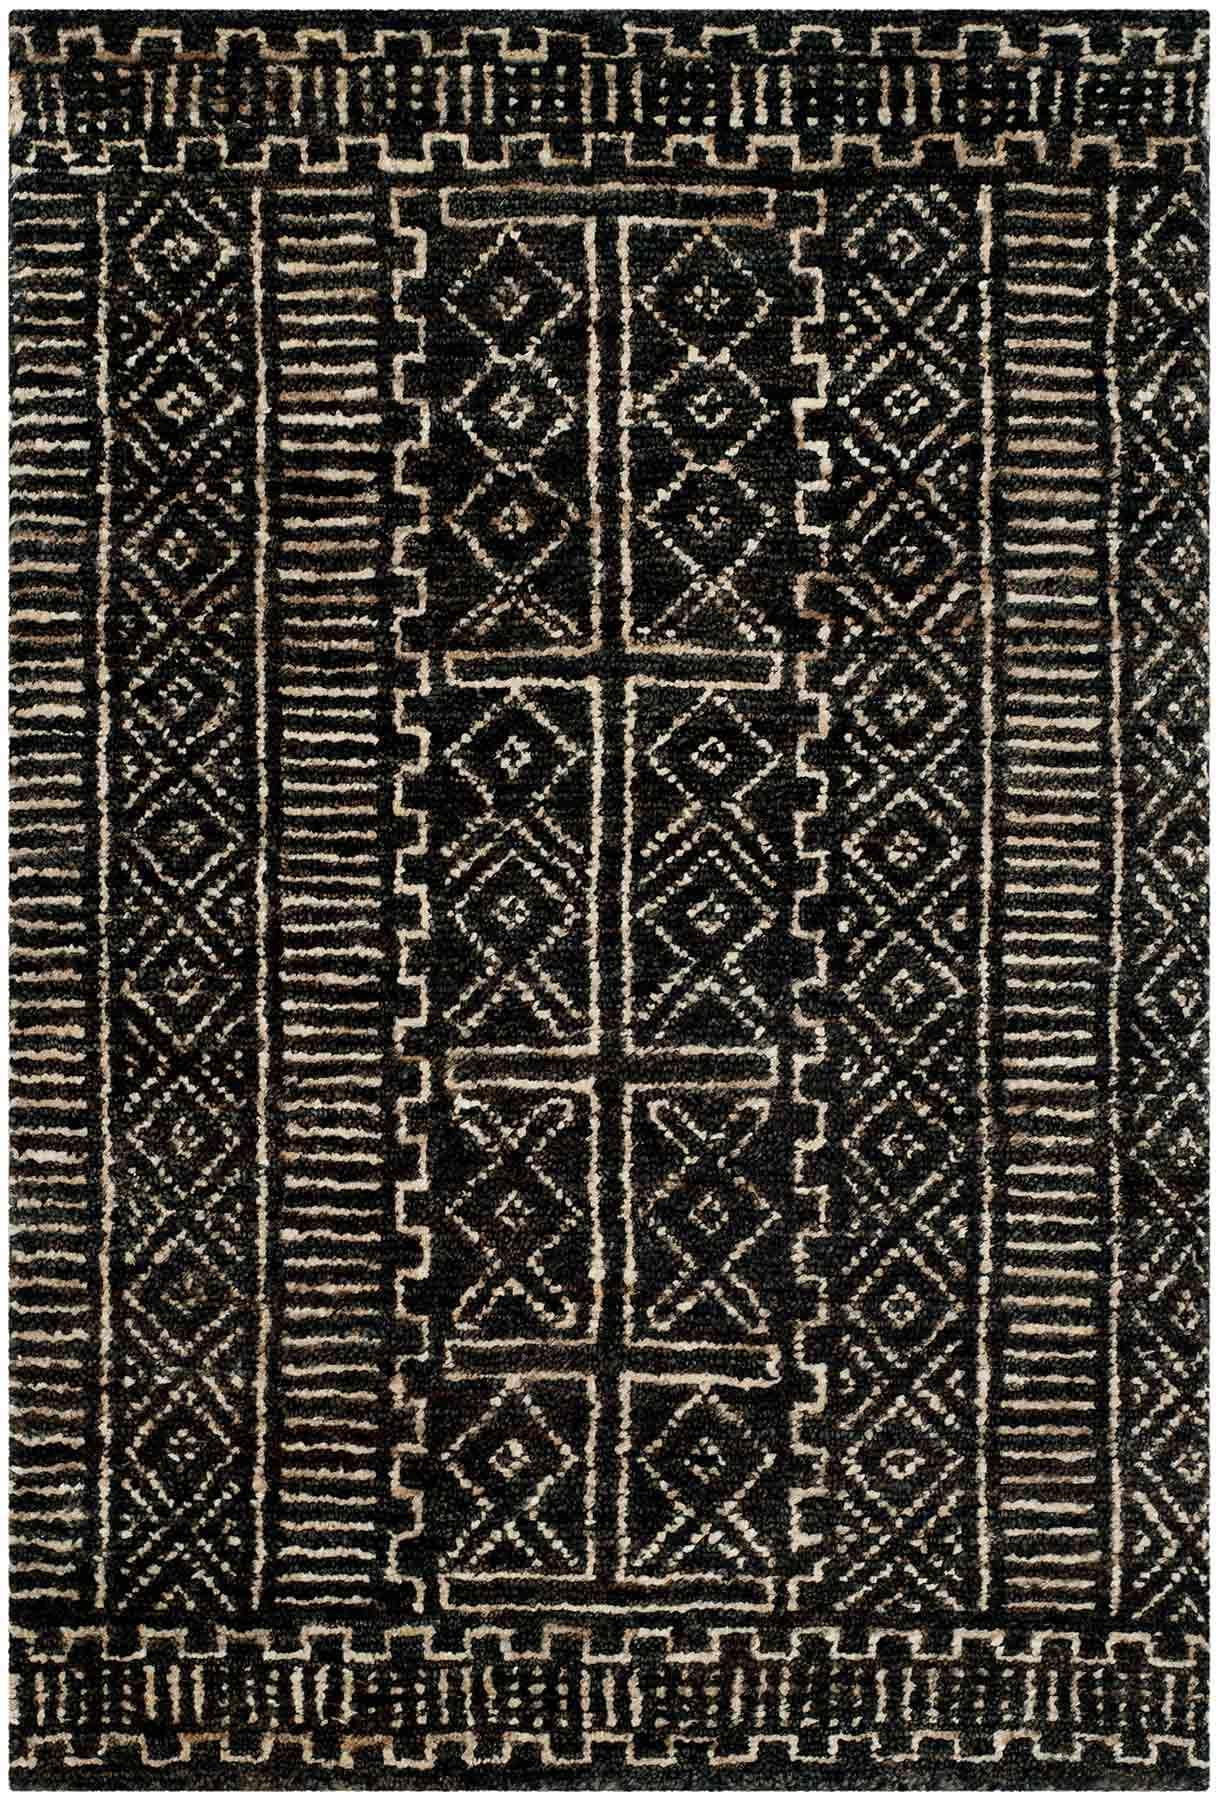 Patterned Area Rugs Awesome Design